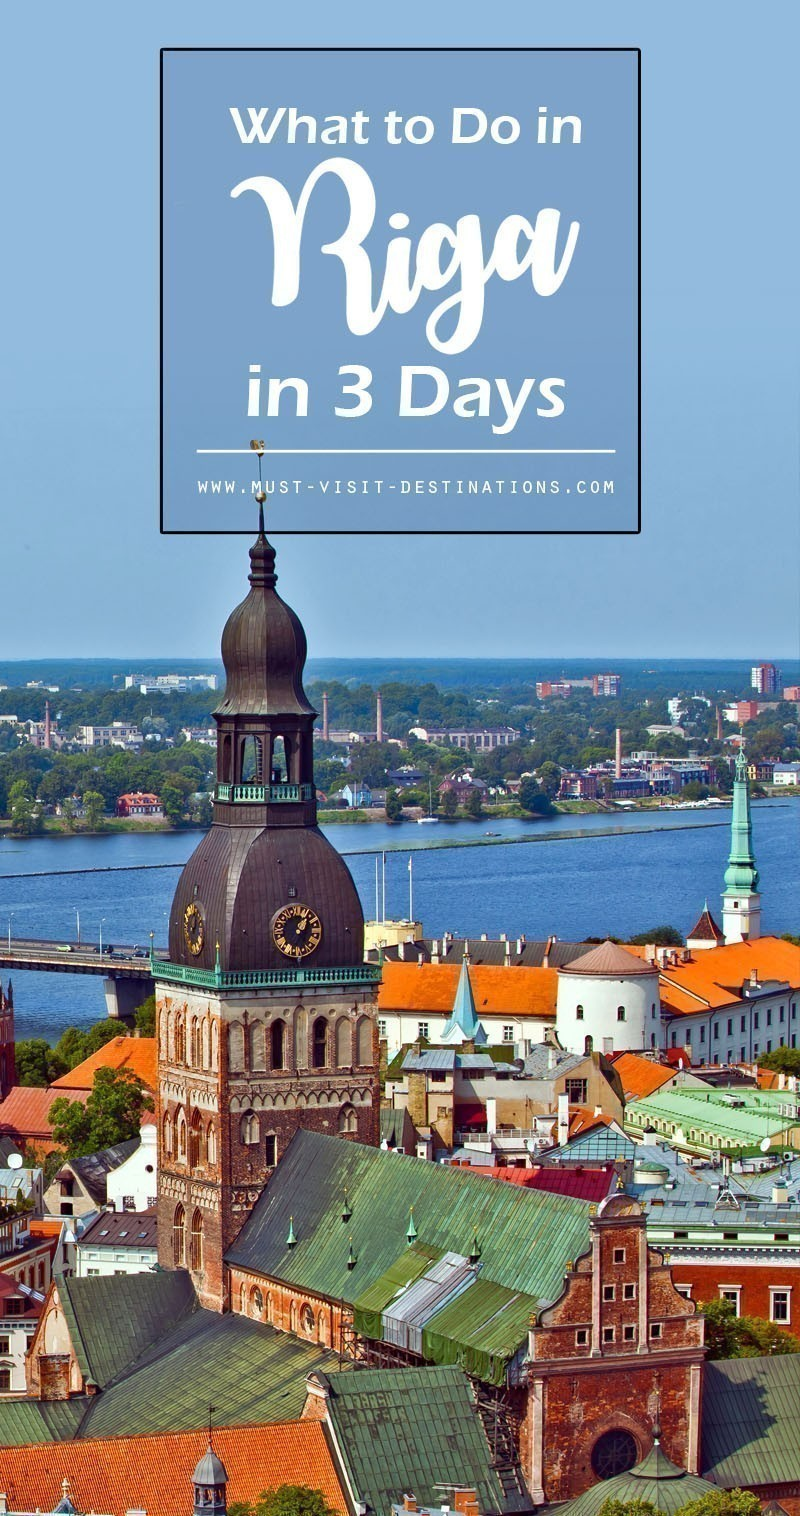 Planning a trip of 3 days in Riga? Then you are heading towards the most awesome trip of your life. Here are some things to do in Riga in 3 Days. #riga #travel